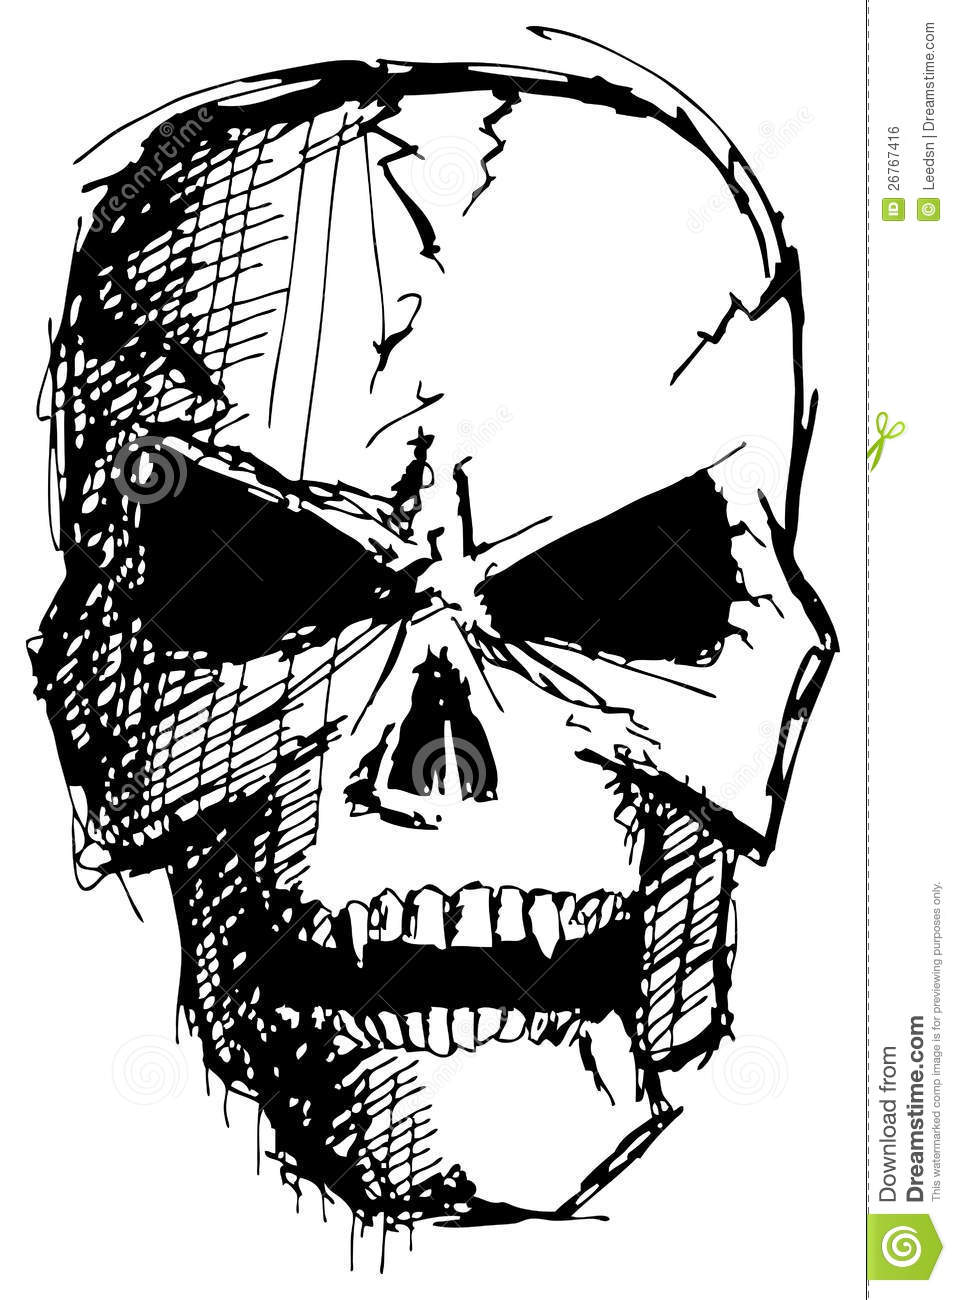 angry monster skull royalty free stock image